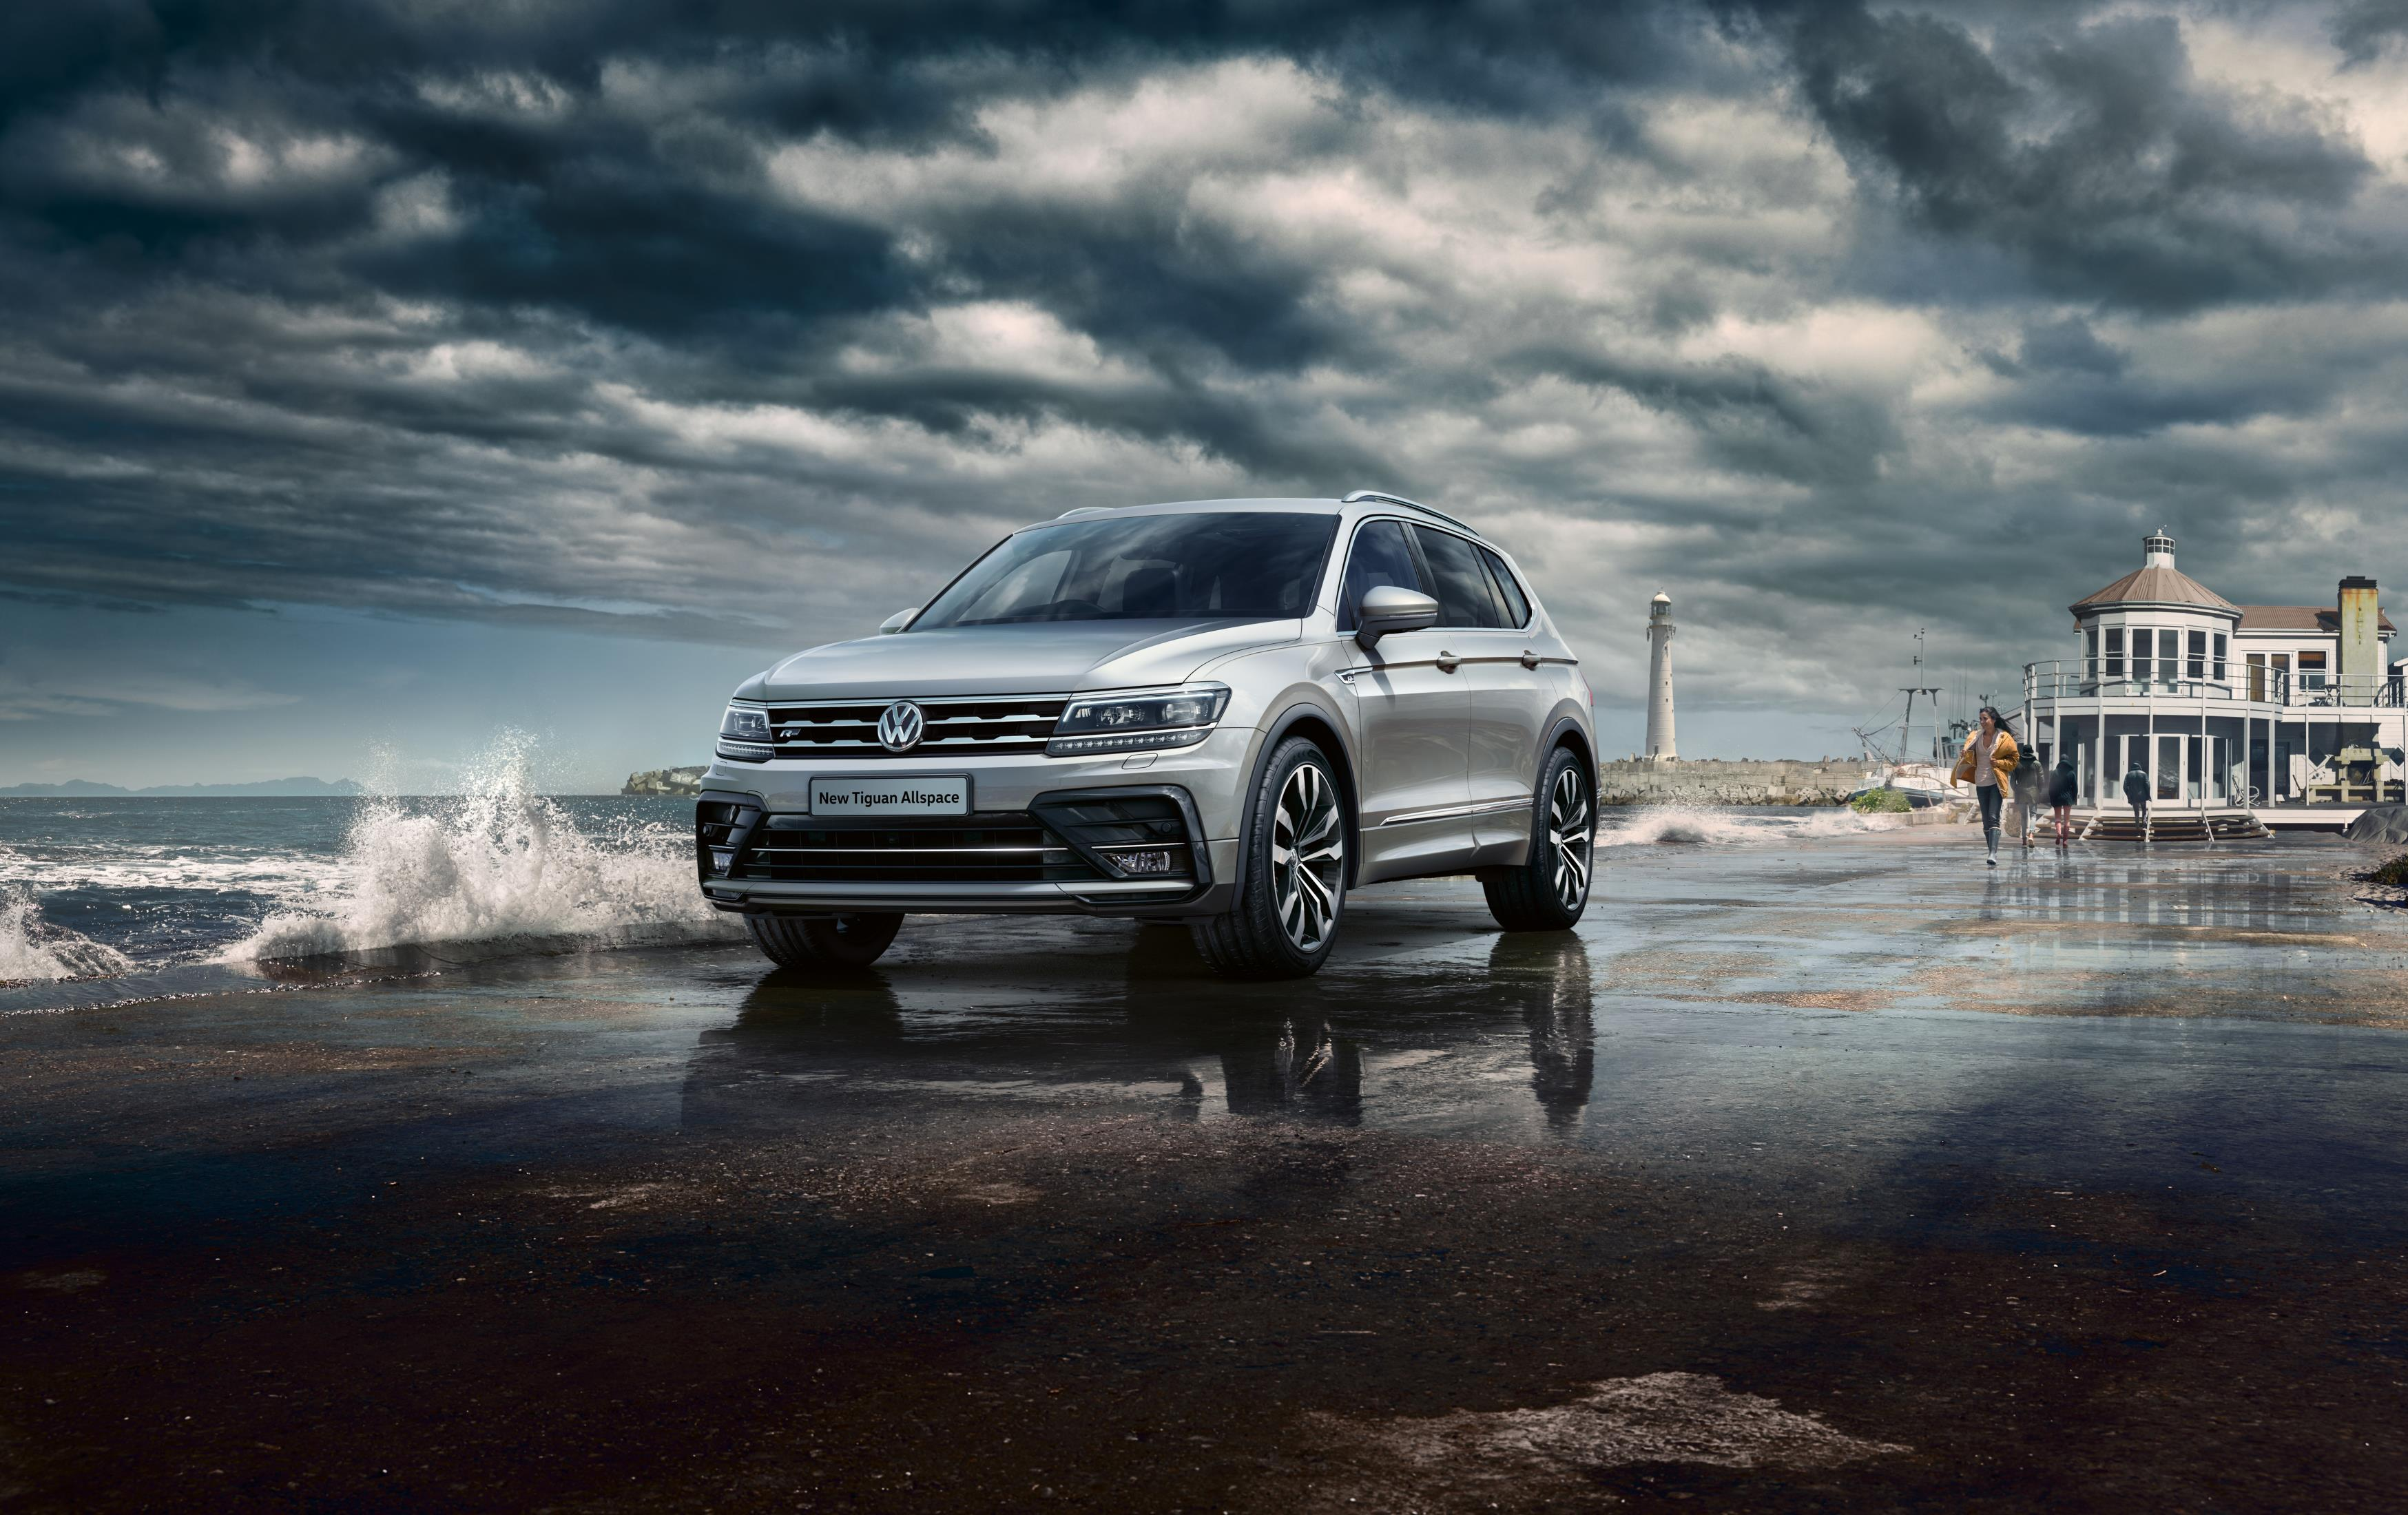 Roc And Tiguan Allspace Try To Look Fast With R-Line Trims